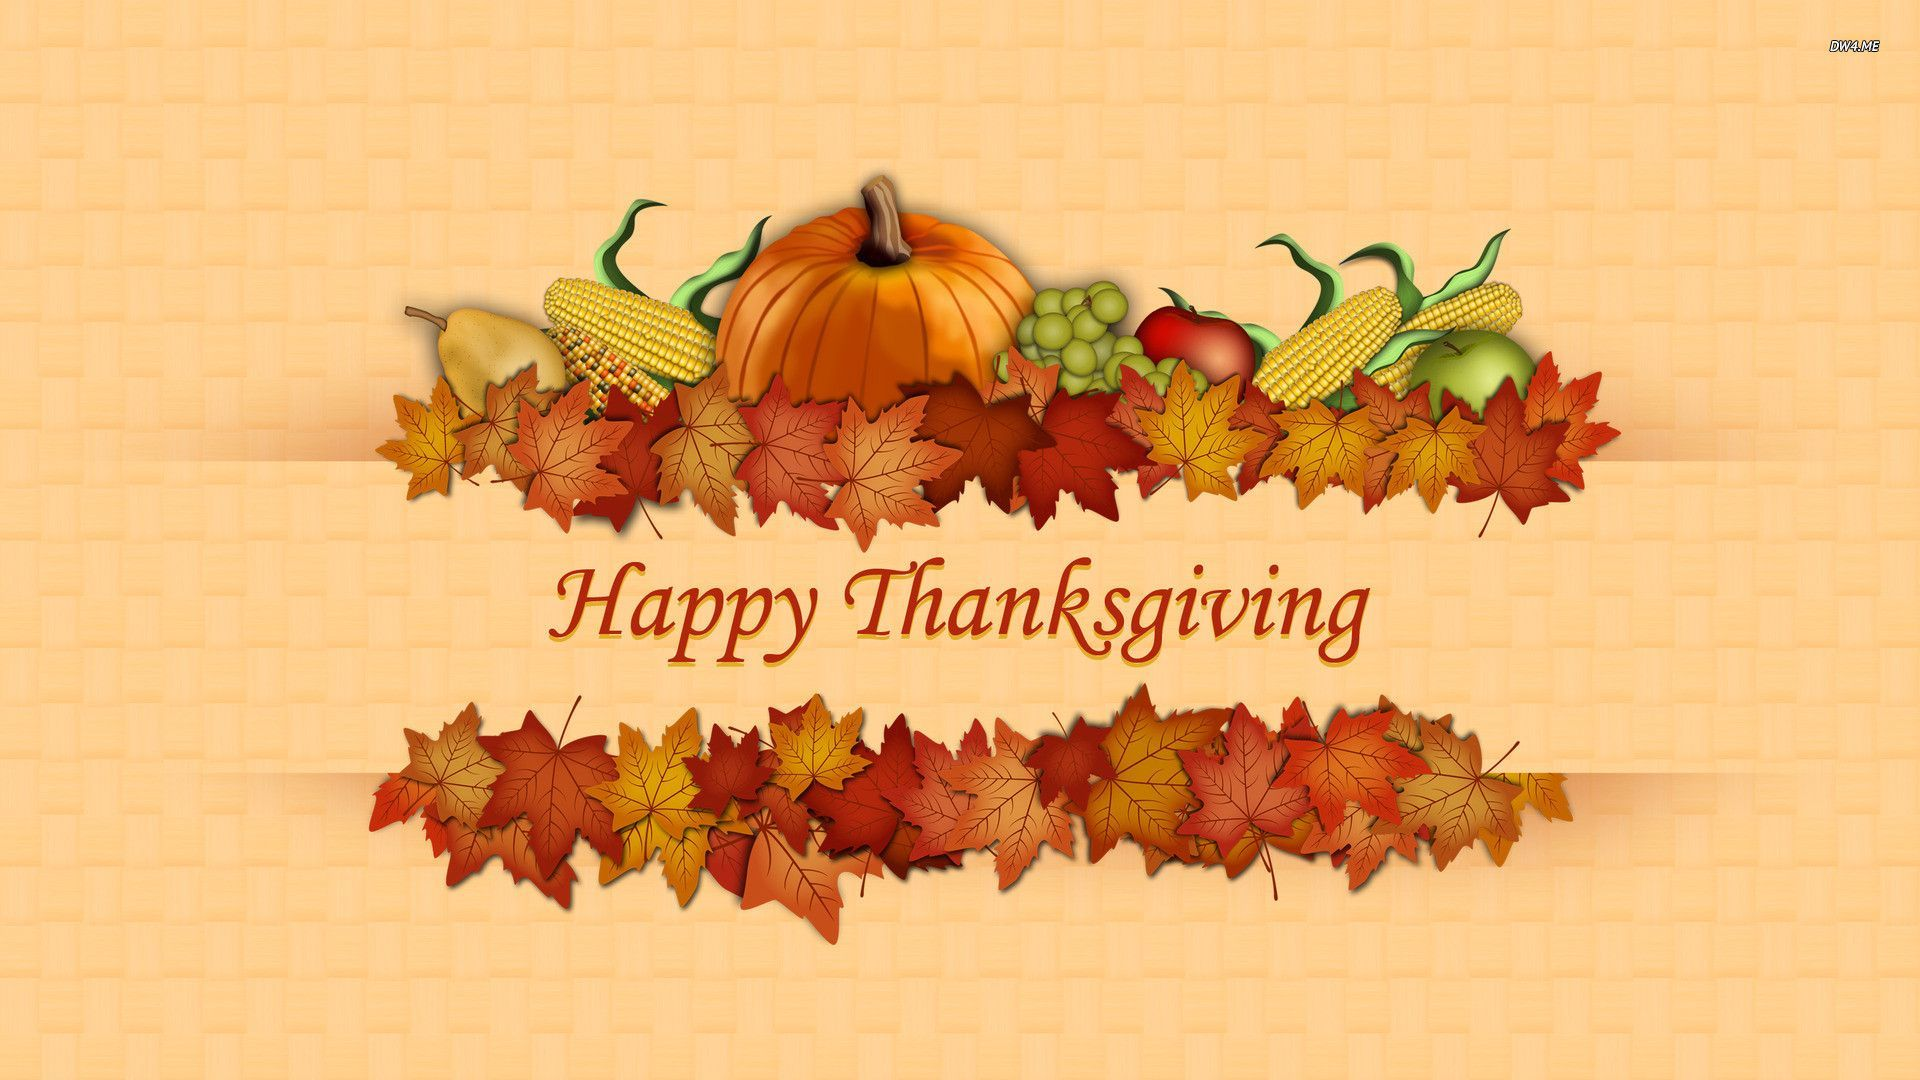 Thanksgiving Wallpaper HD Download PixelsTalk 1920x1080